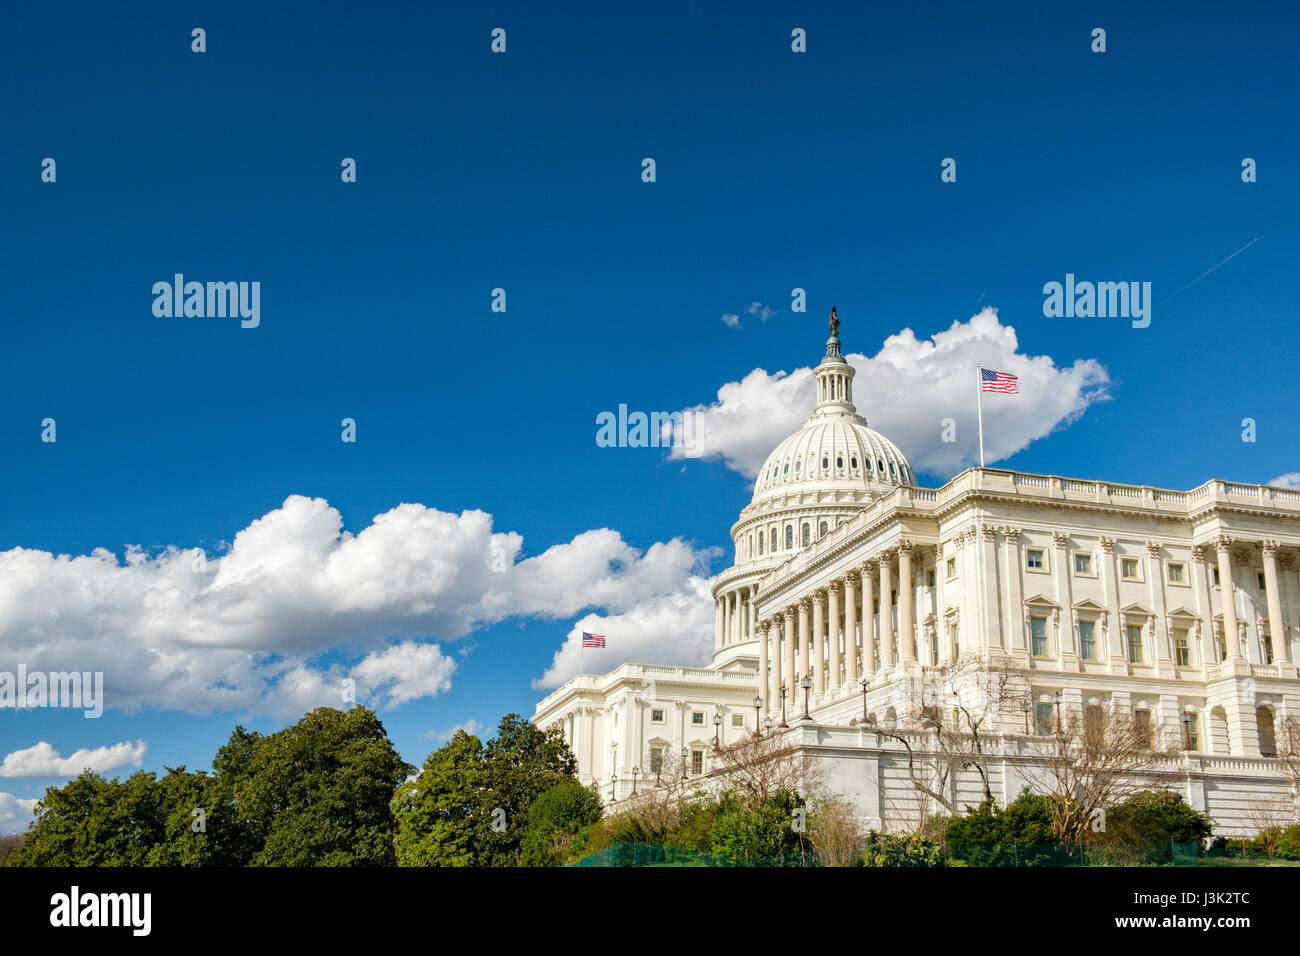 U.S. Capitol with flags, blue sky and clouds - Stock Image